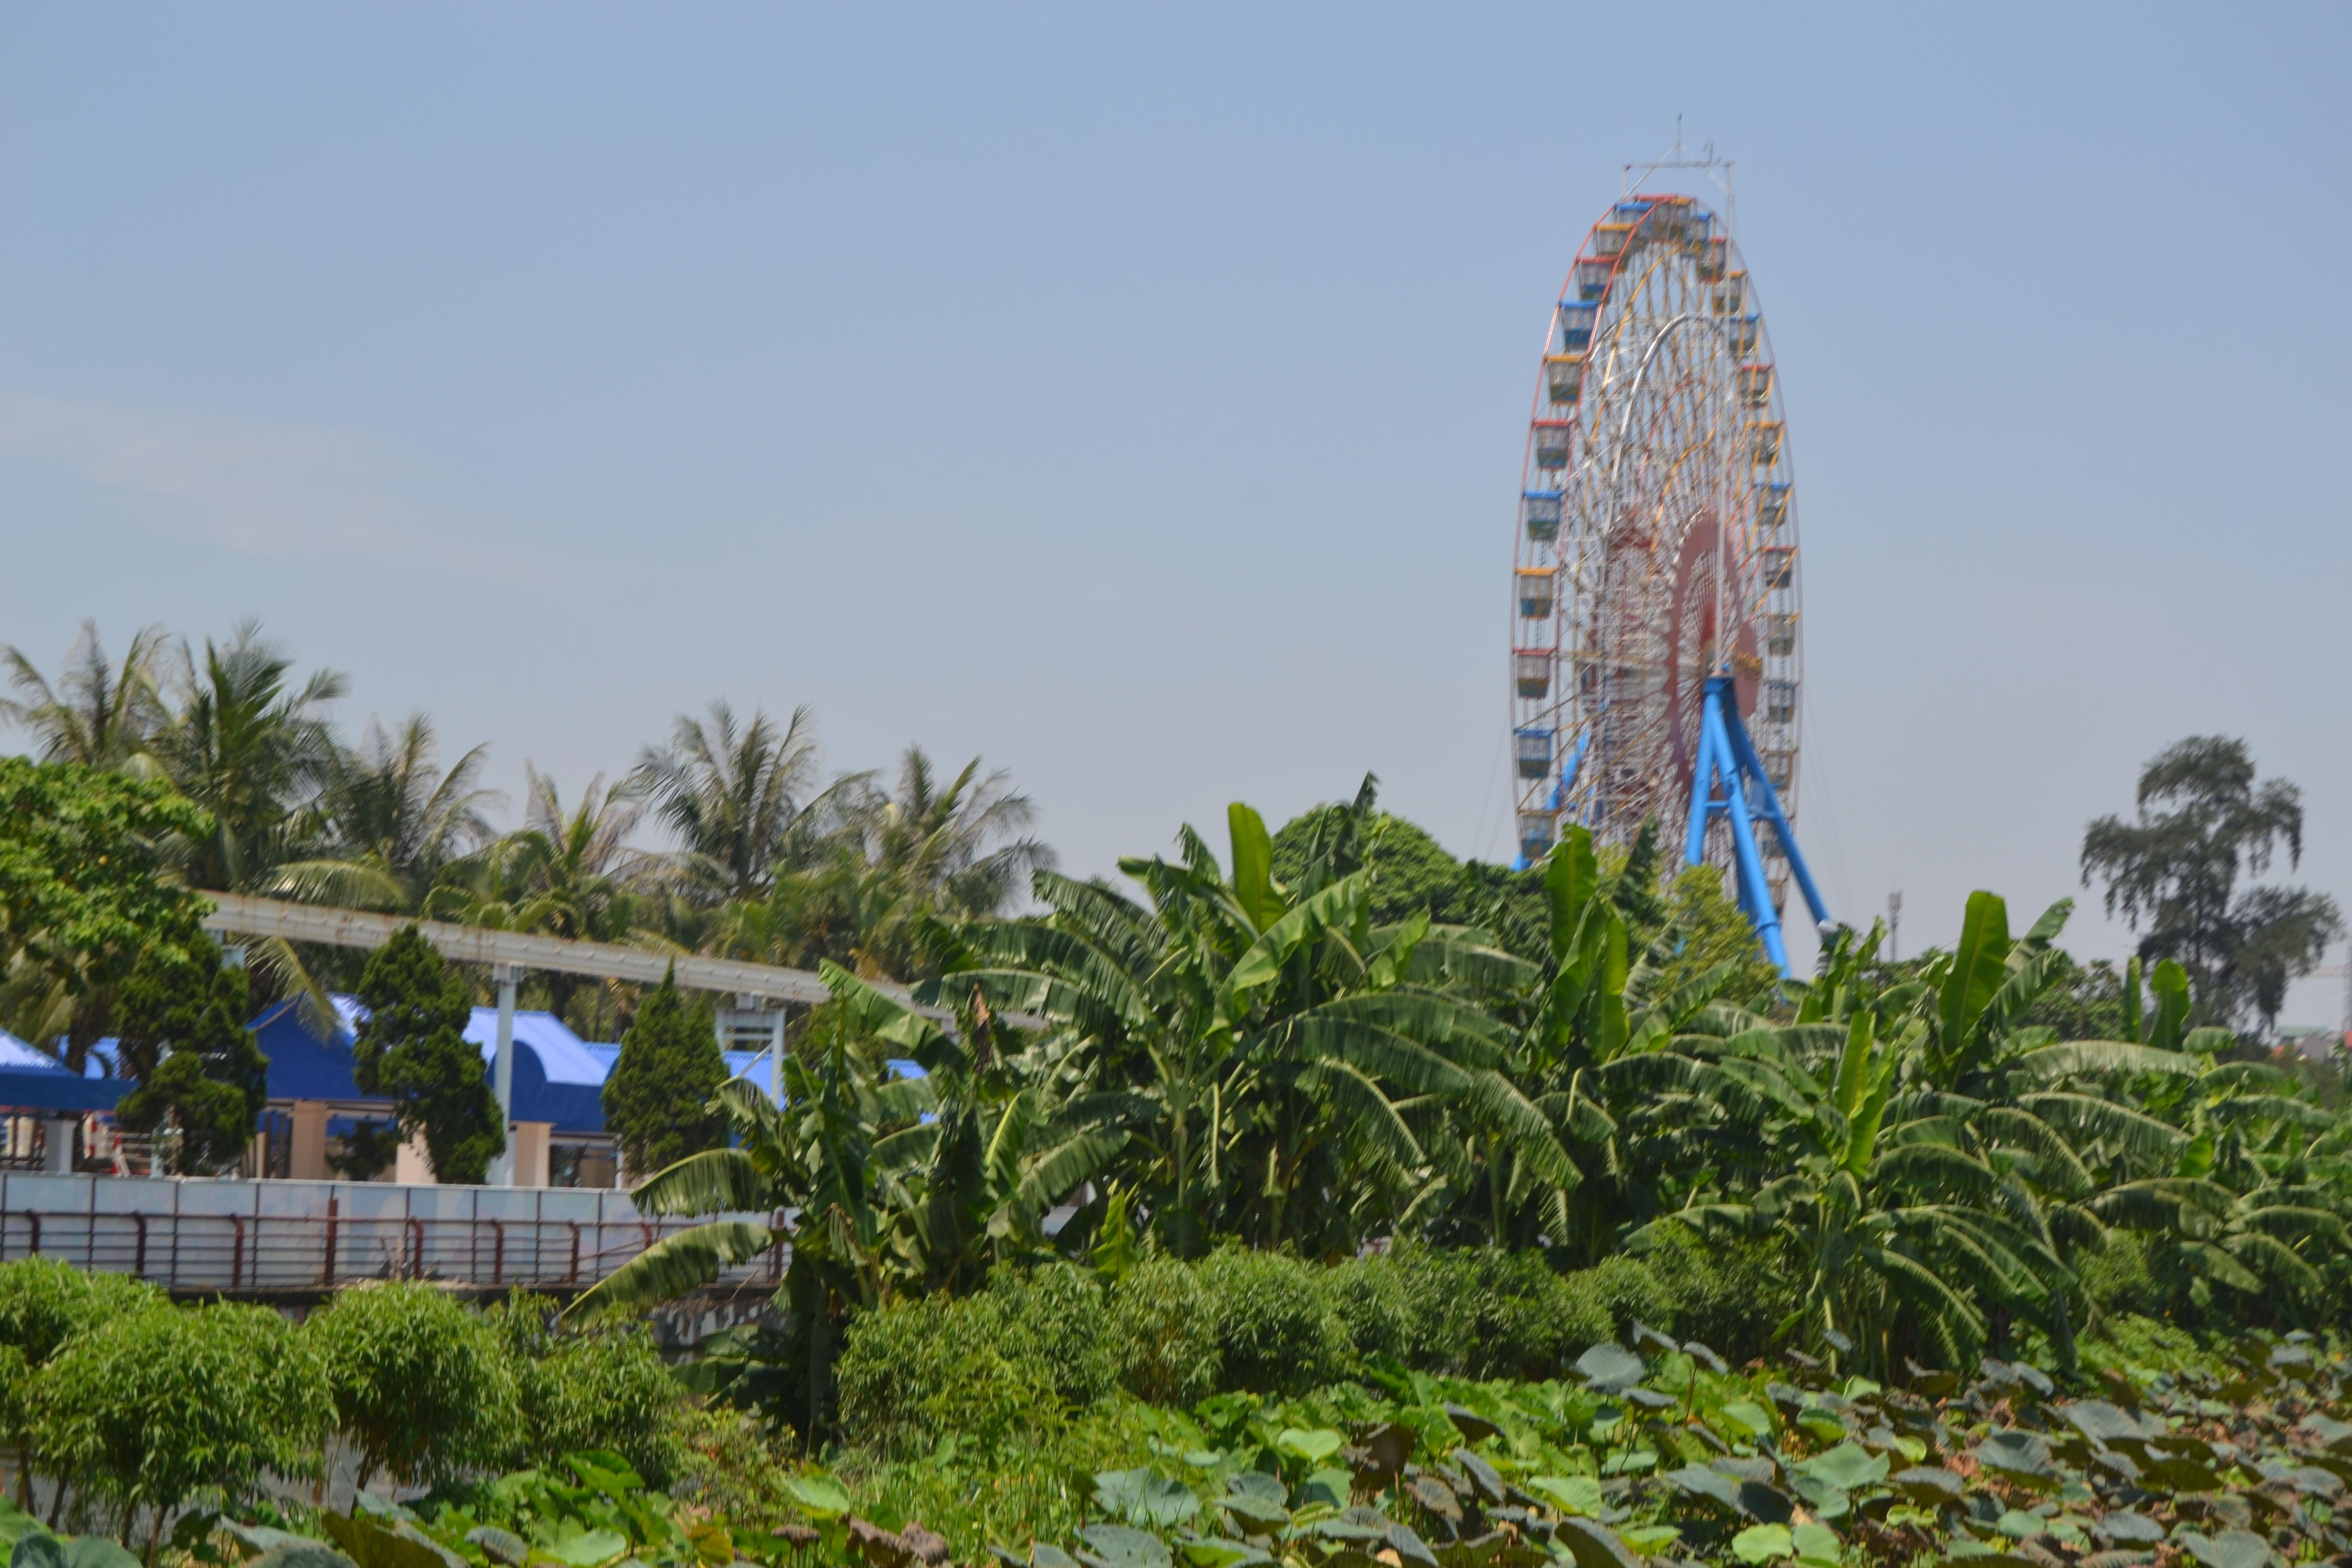 Parque de atracciones en West Lake